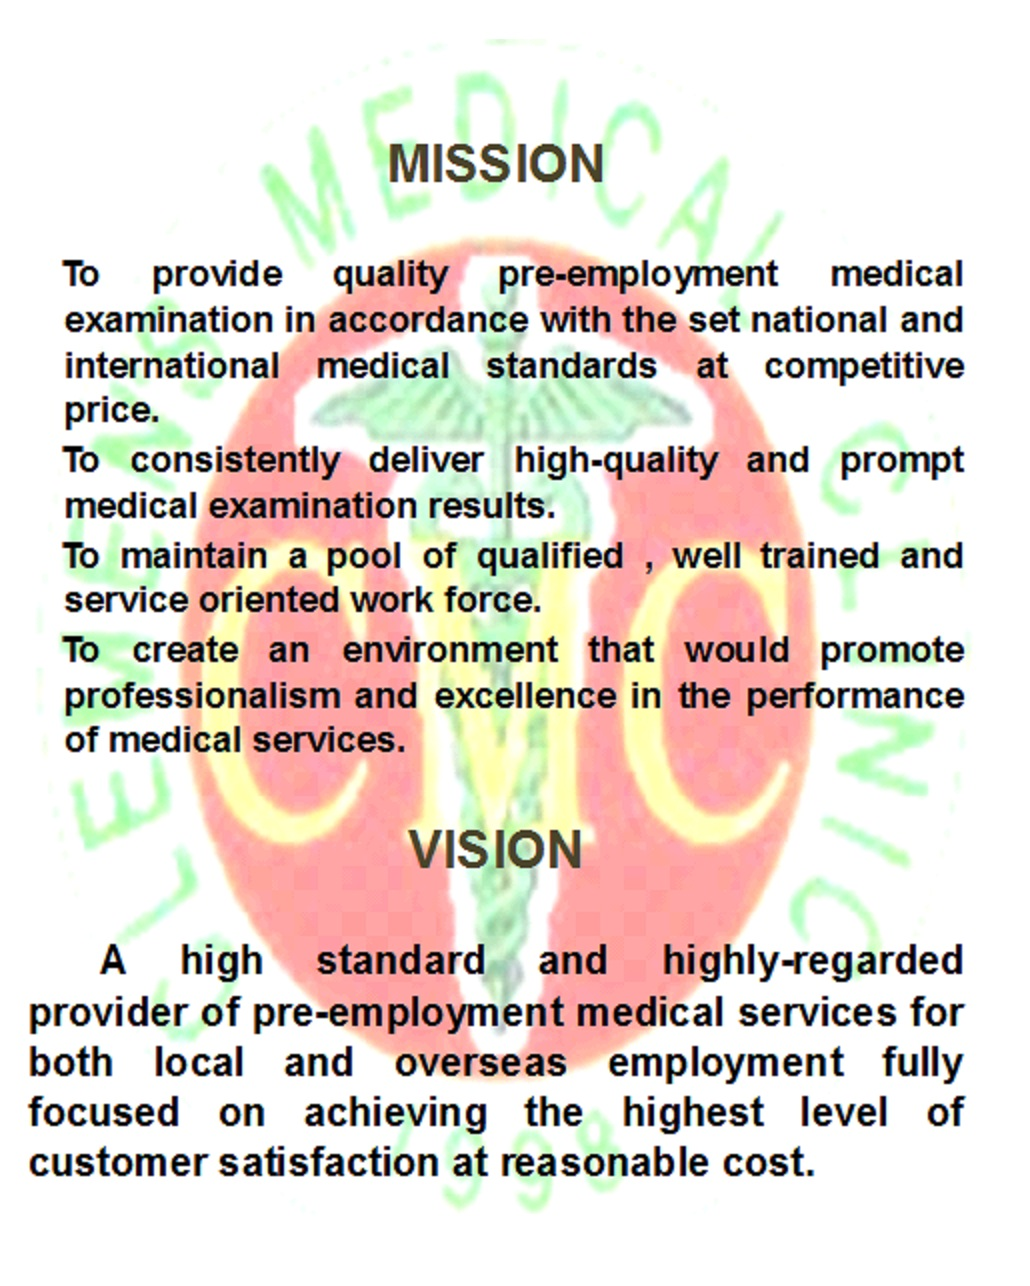 mission and vision of shakey s Google's mission statement and vision statement reflect the powerful position of this company in terms of what it wants to achieve the mission statement defines the strategies of the business, such as the development of new products.